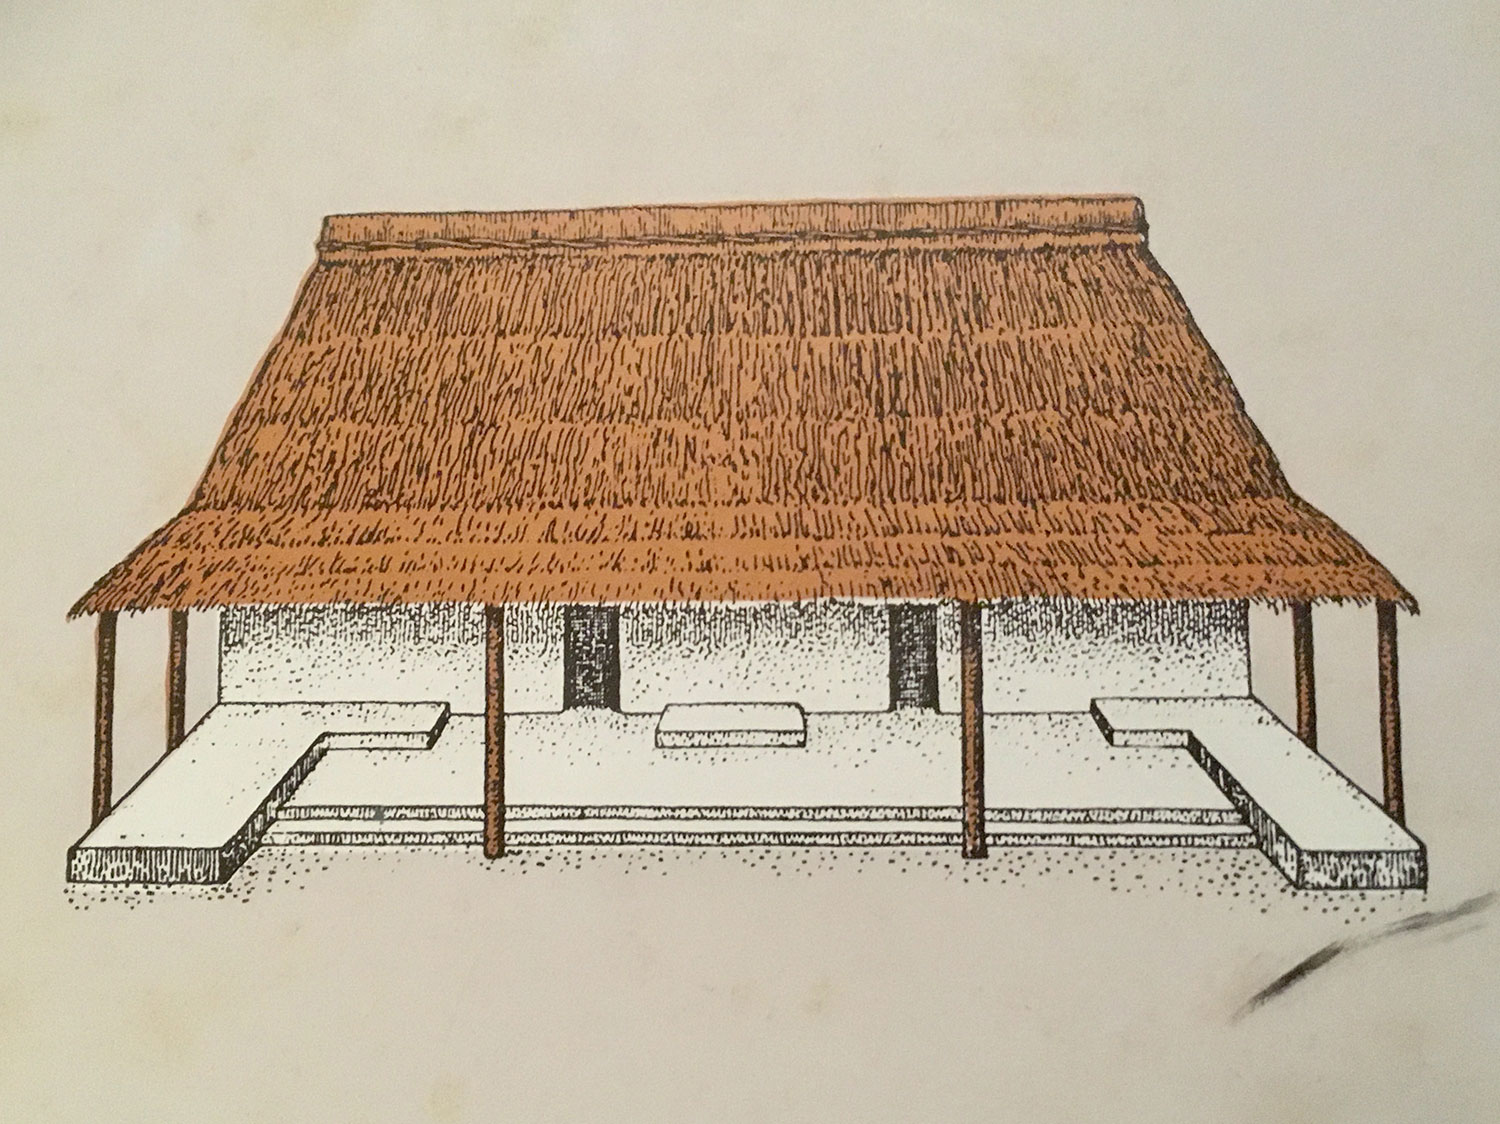 A drawing of an ancient Maya wooden house.